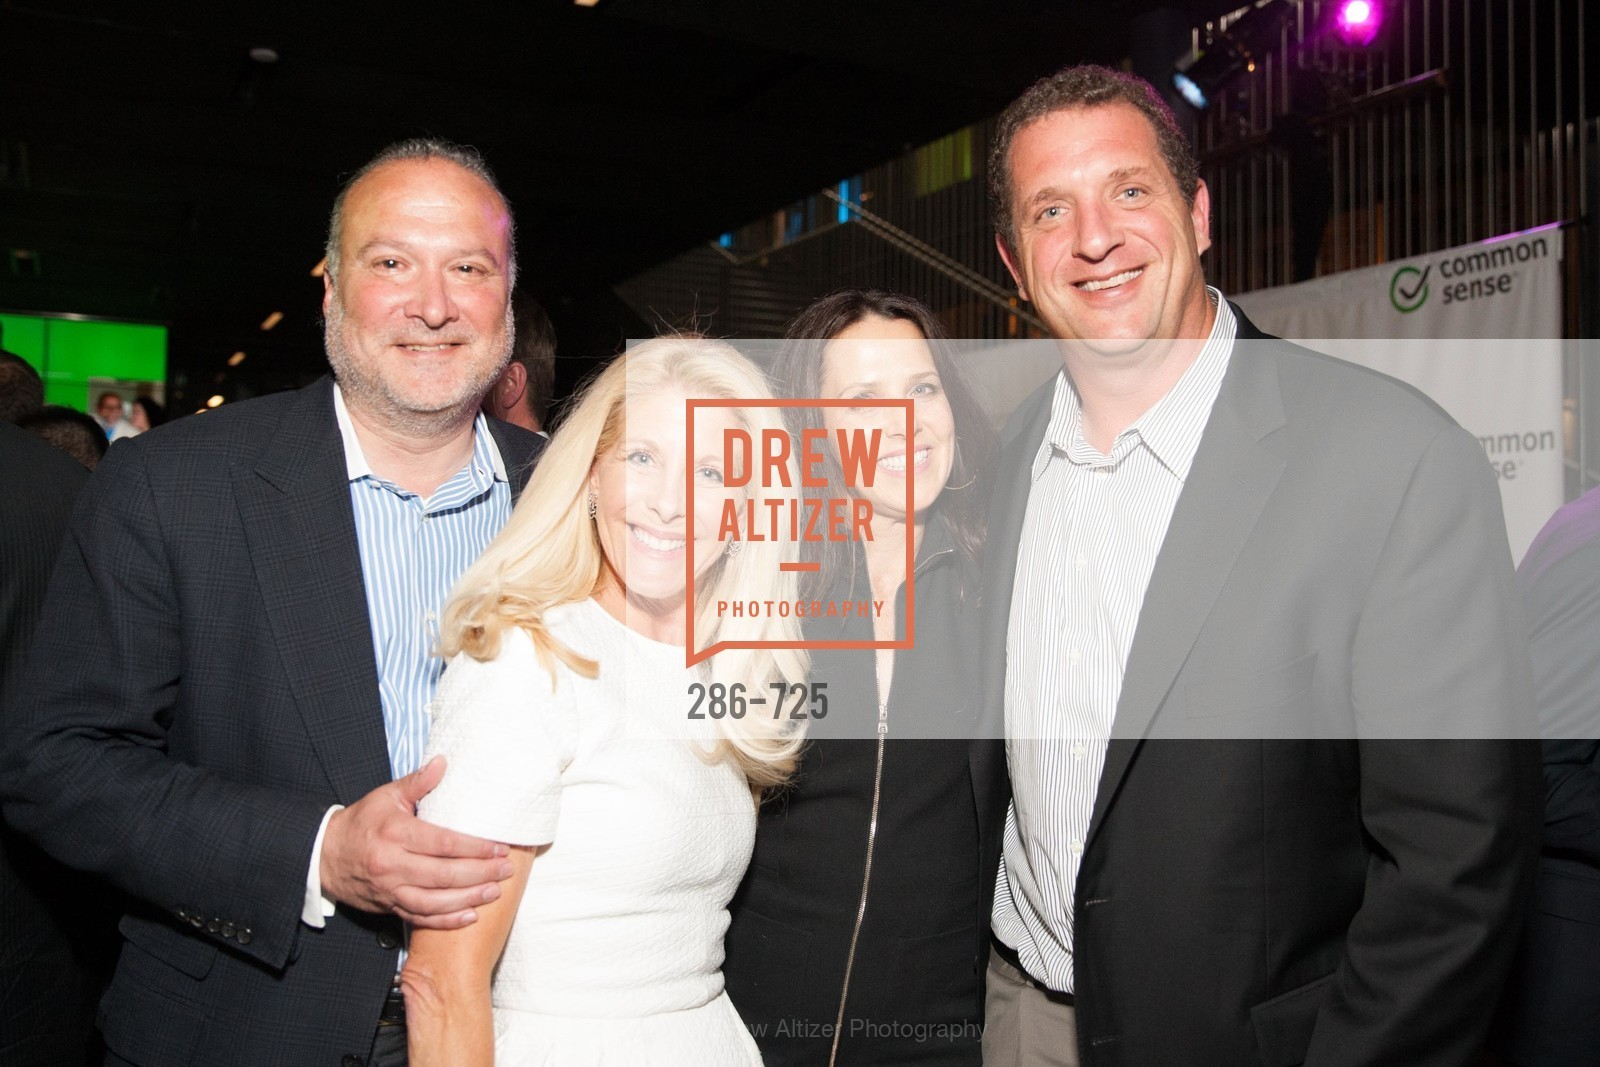 Robert Blum, Dana Blum, Megan Bargain, Eric Bargain, COMMON SENSE Media Awards 2015, US, May 14th, 2015,Drew Altizer, Drew Altizer Photography, full-service event agency, private events, San Francisco photographer, photographer California